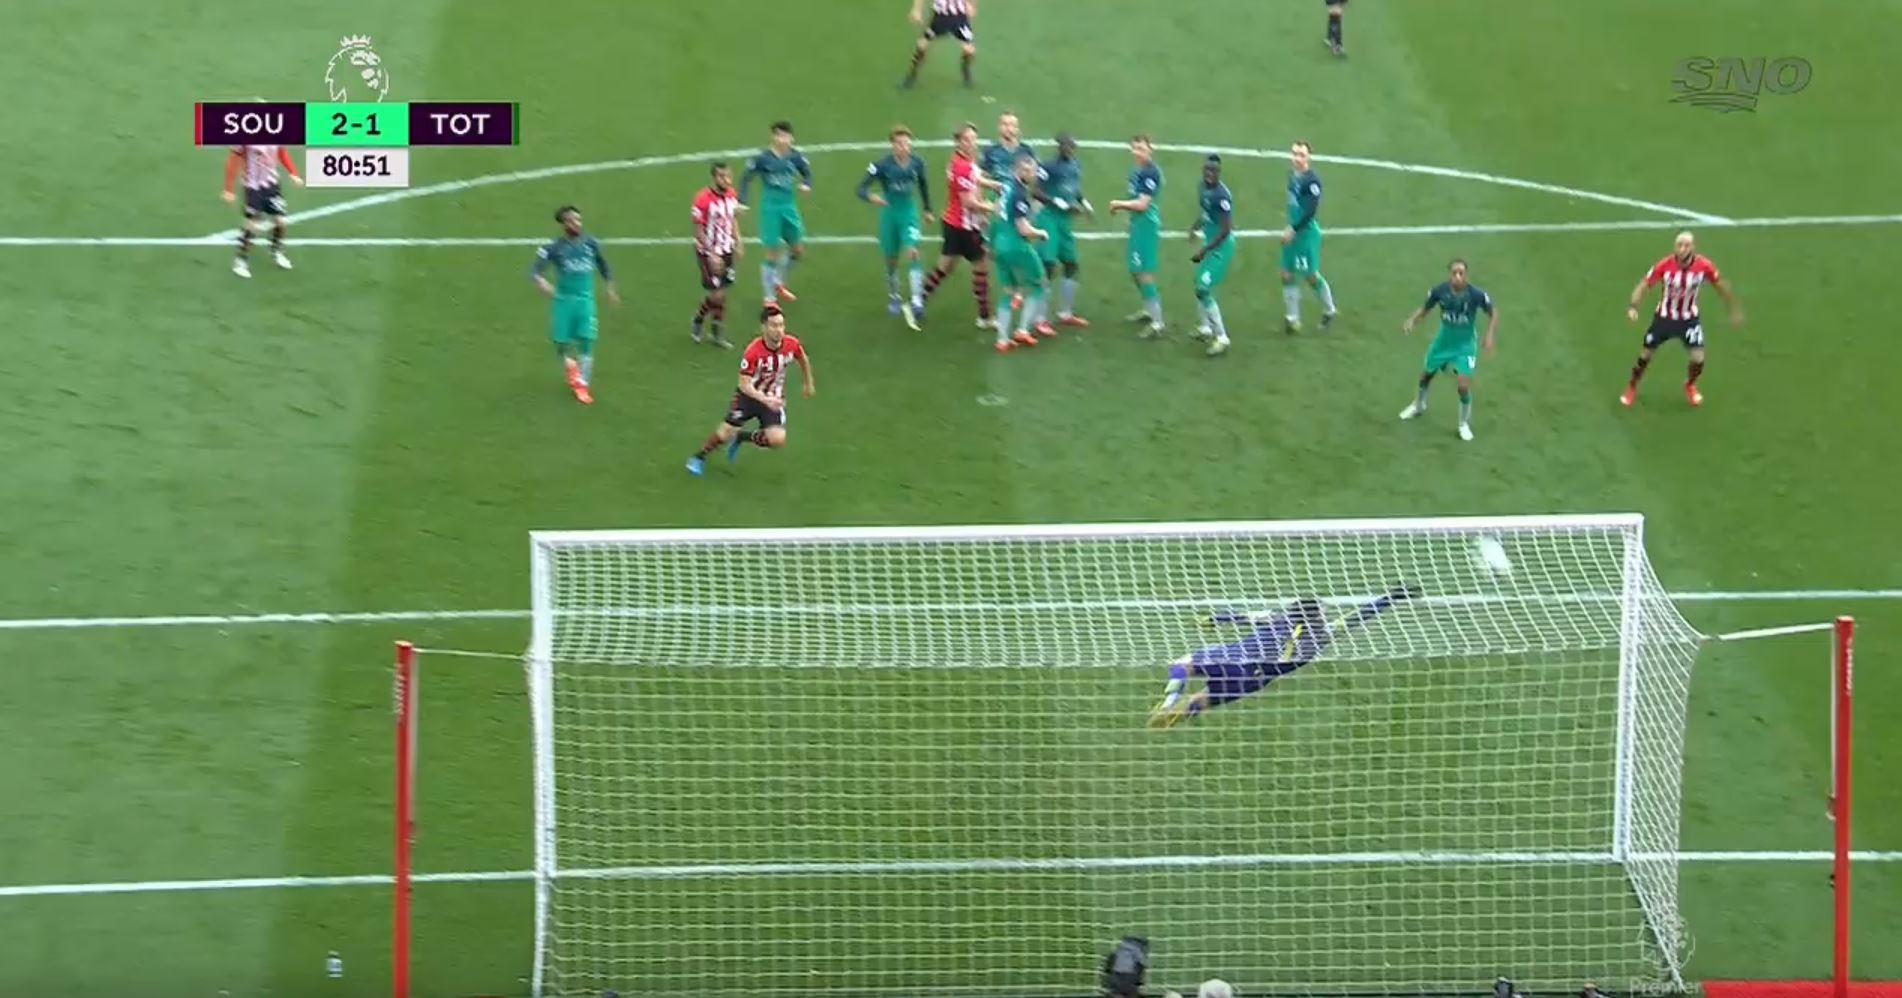 WATCH: Another Outstanding Top Bins Free-Kick From Ward-Prowse. He's Unstoppable!